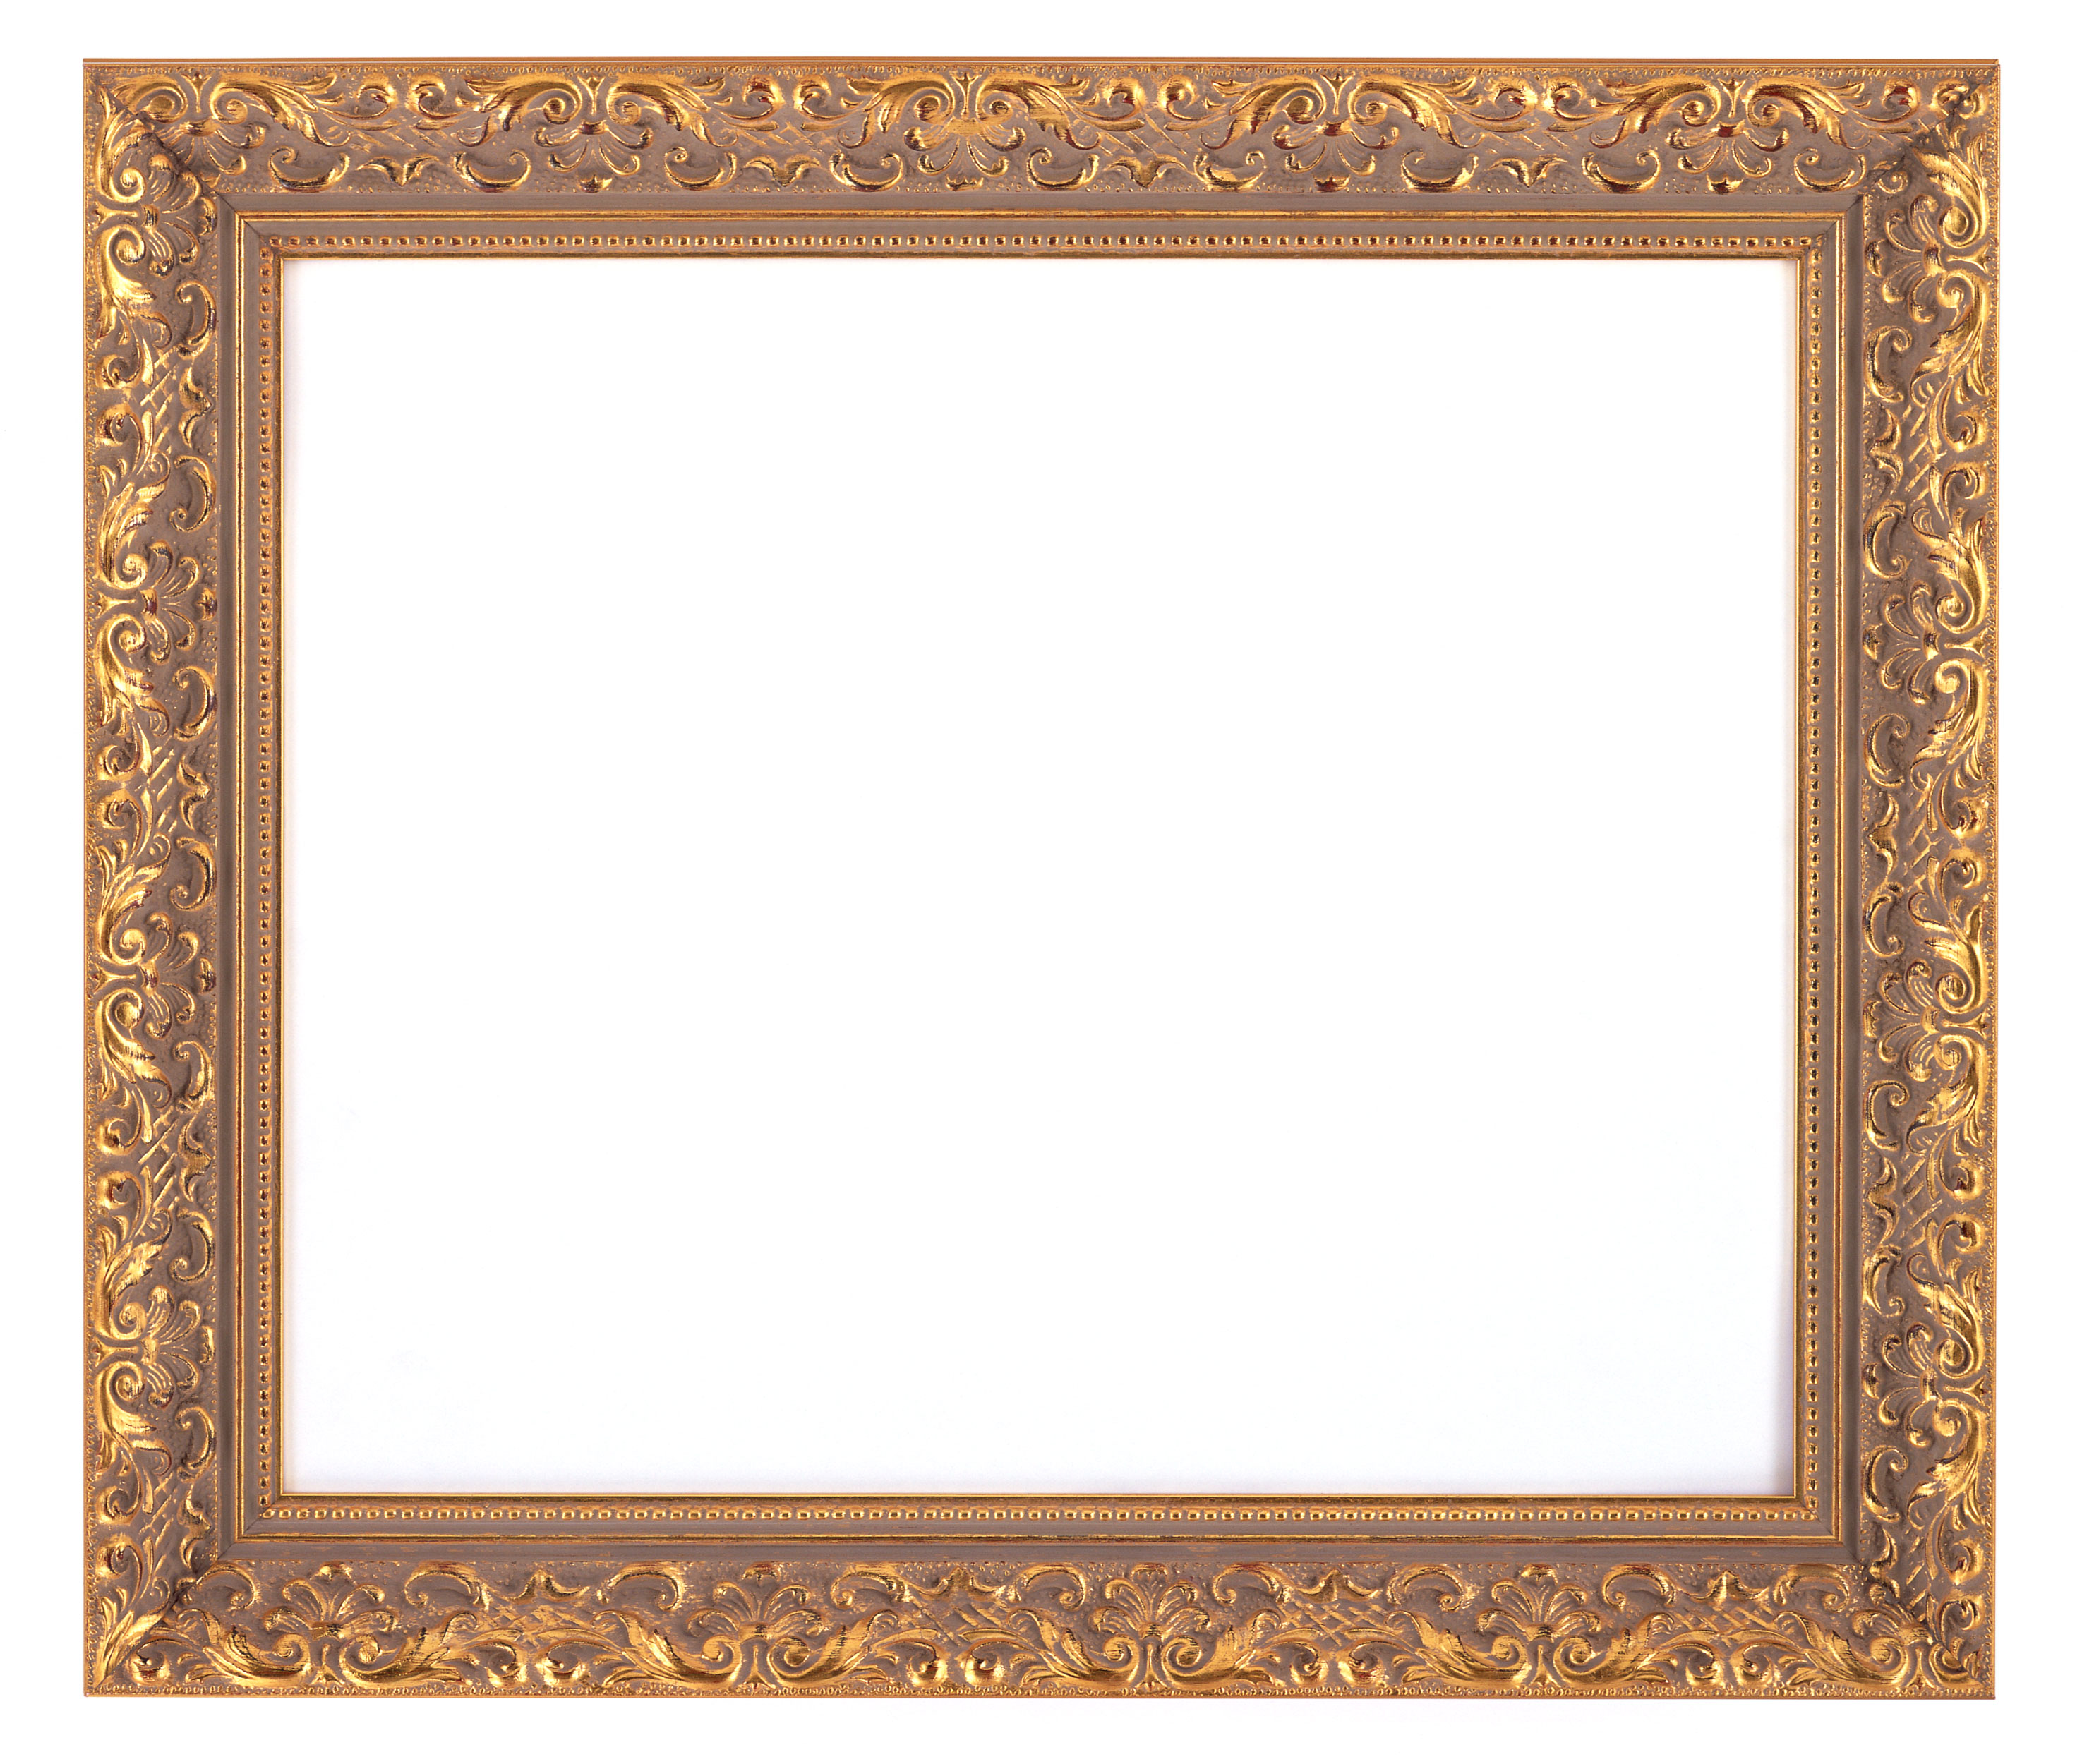 Free High Definition Image Frames